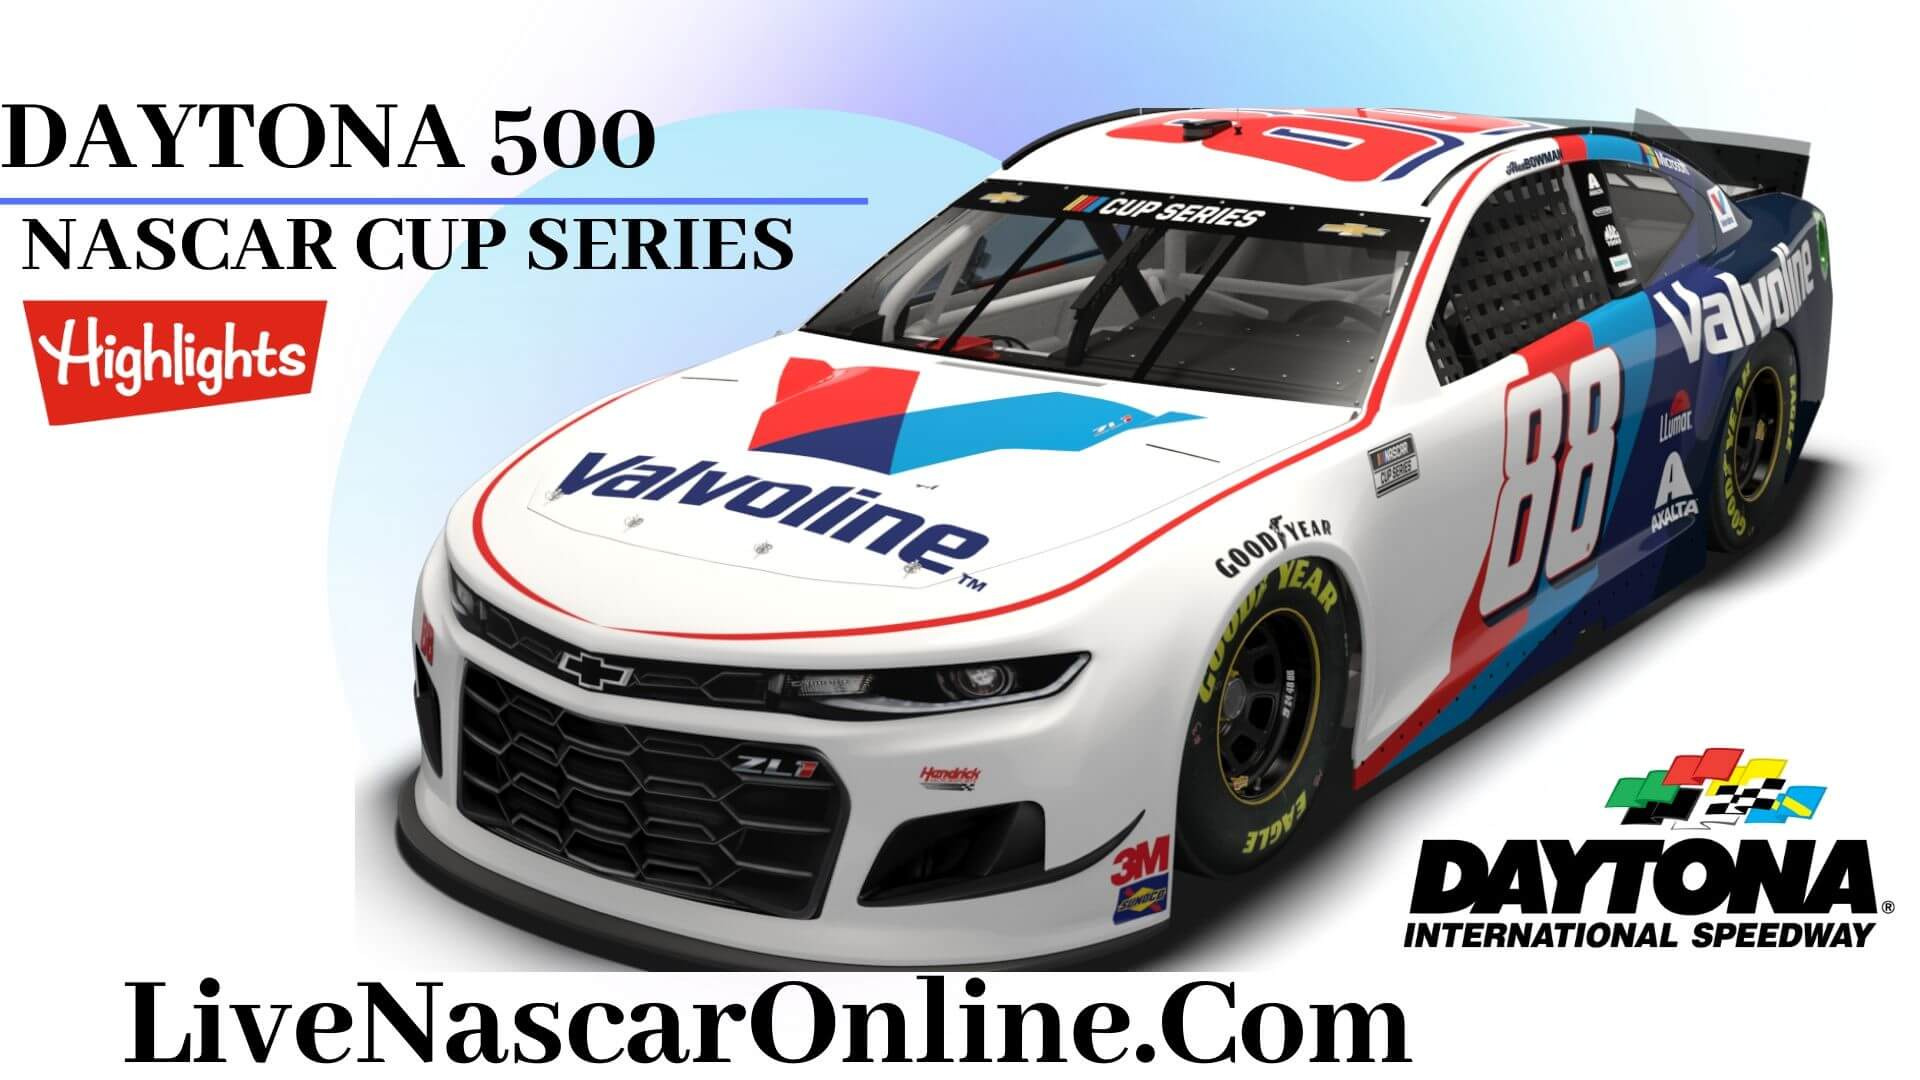 Daytona 500 Highlights 2020 Nascar Cup Series